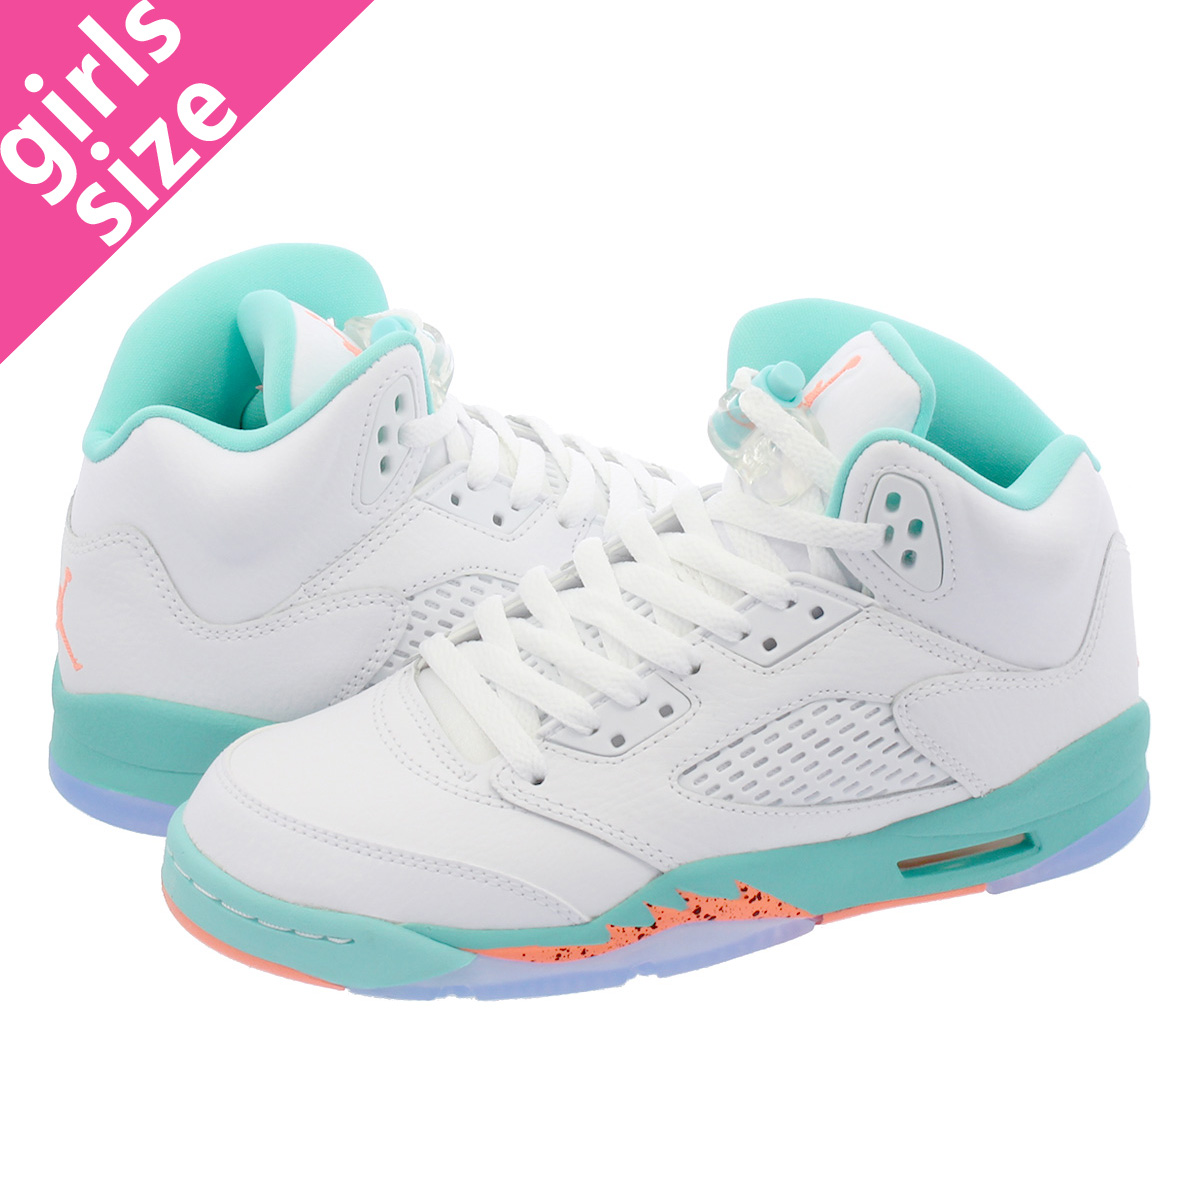 competitive price 60f10 3fe60 NIKE AIR JORDAN 5 RETRO GG Nike air Jordan 5 nostalgic GG WHITE/CRIMSON  PULSE/LIGHT AQUA/BLACK